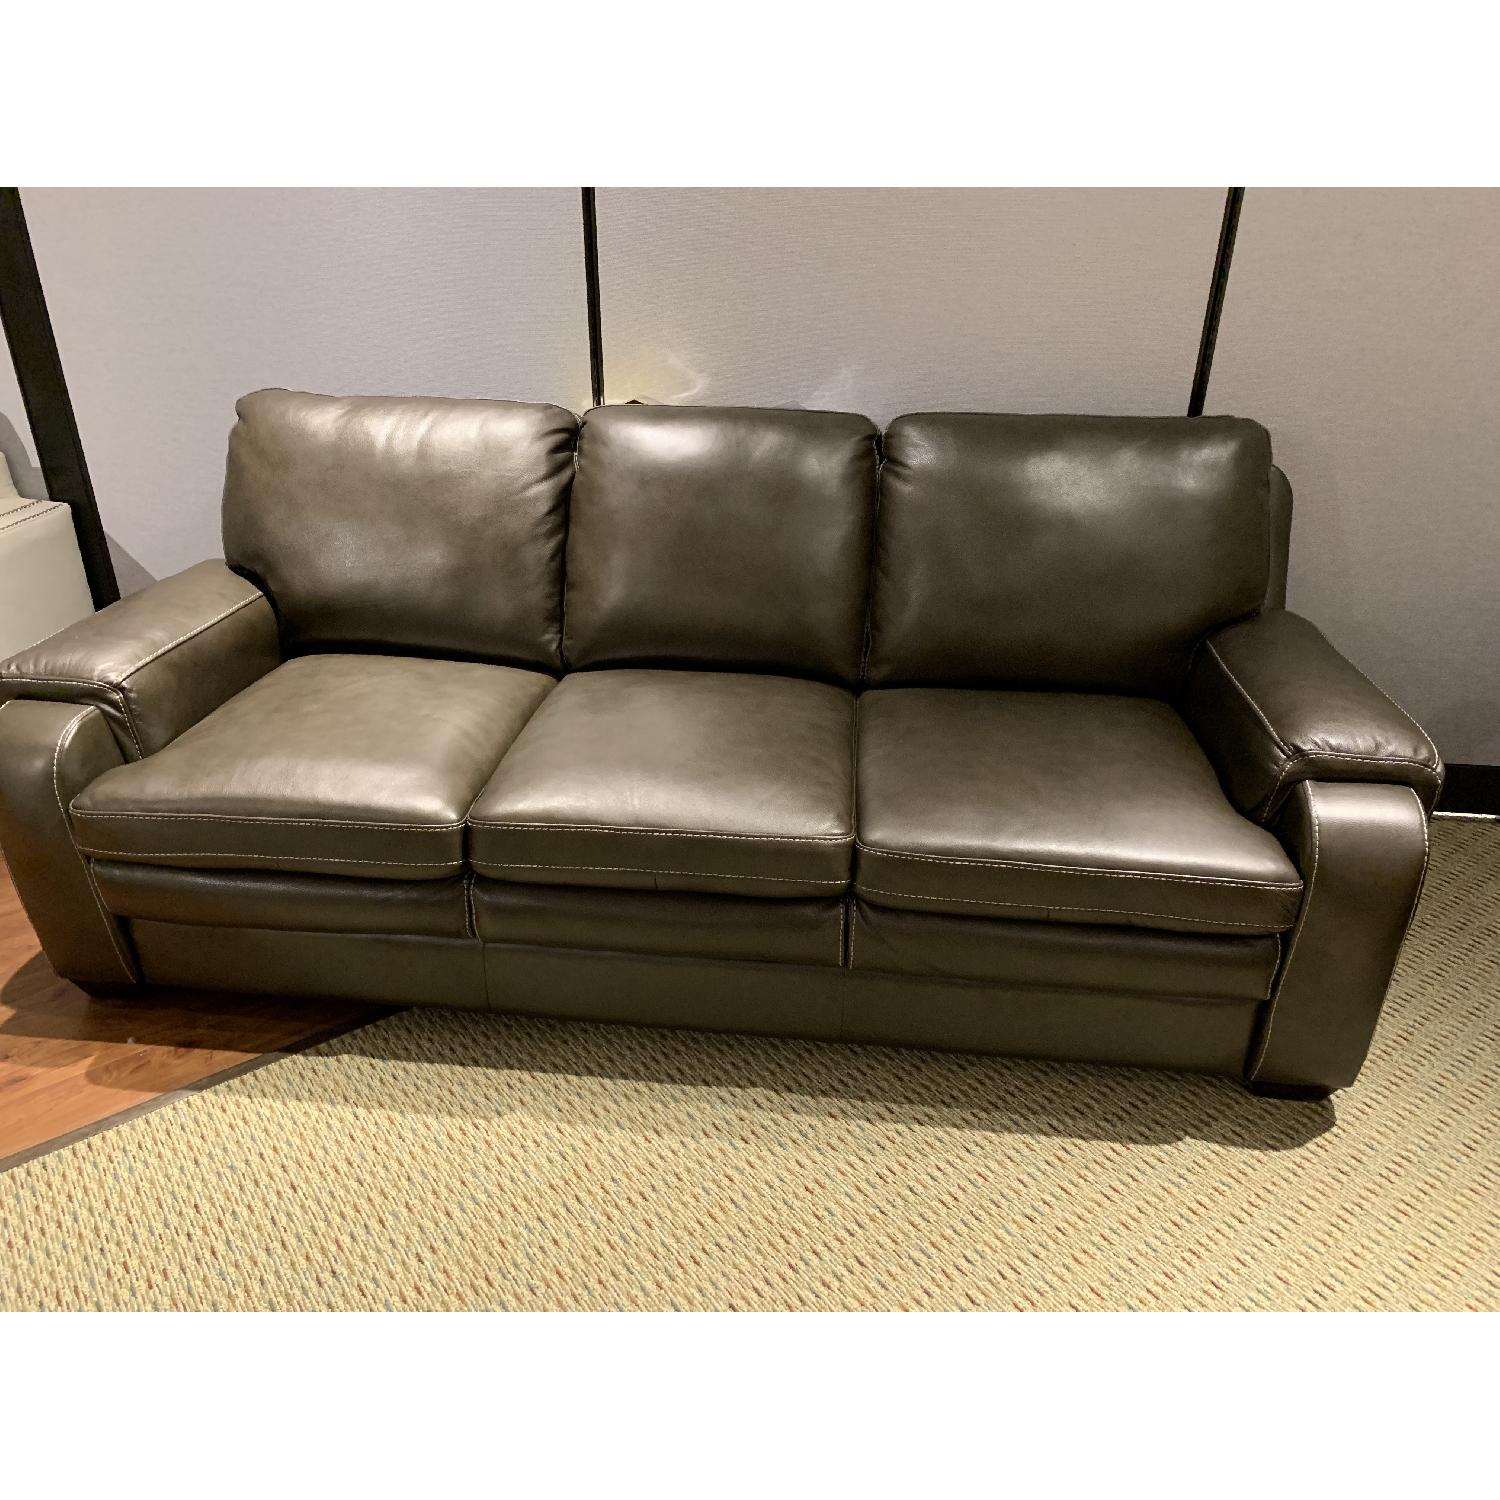 Jennifer Convertibles Matera Leather Match Sofa-2